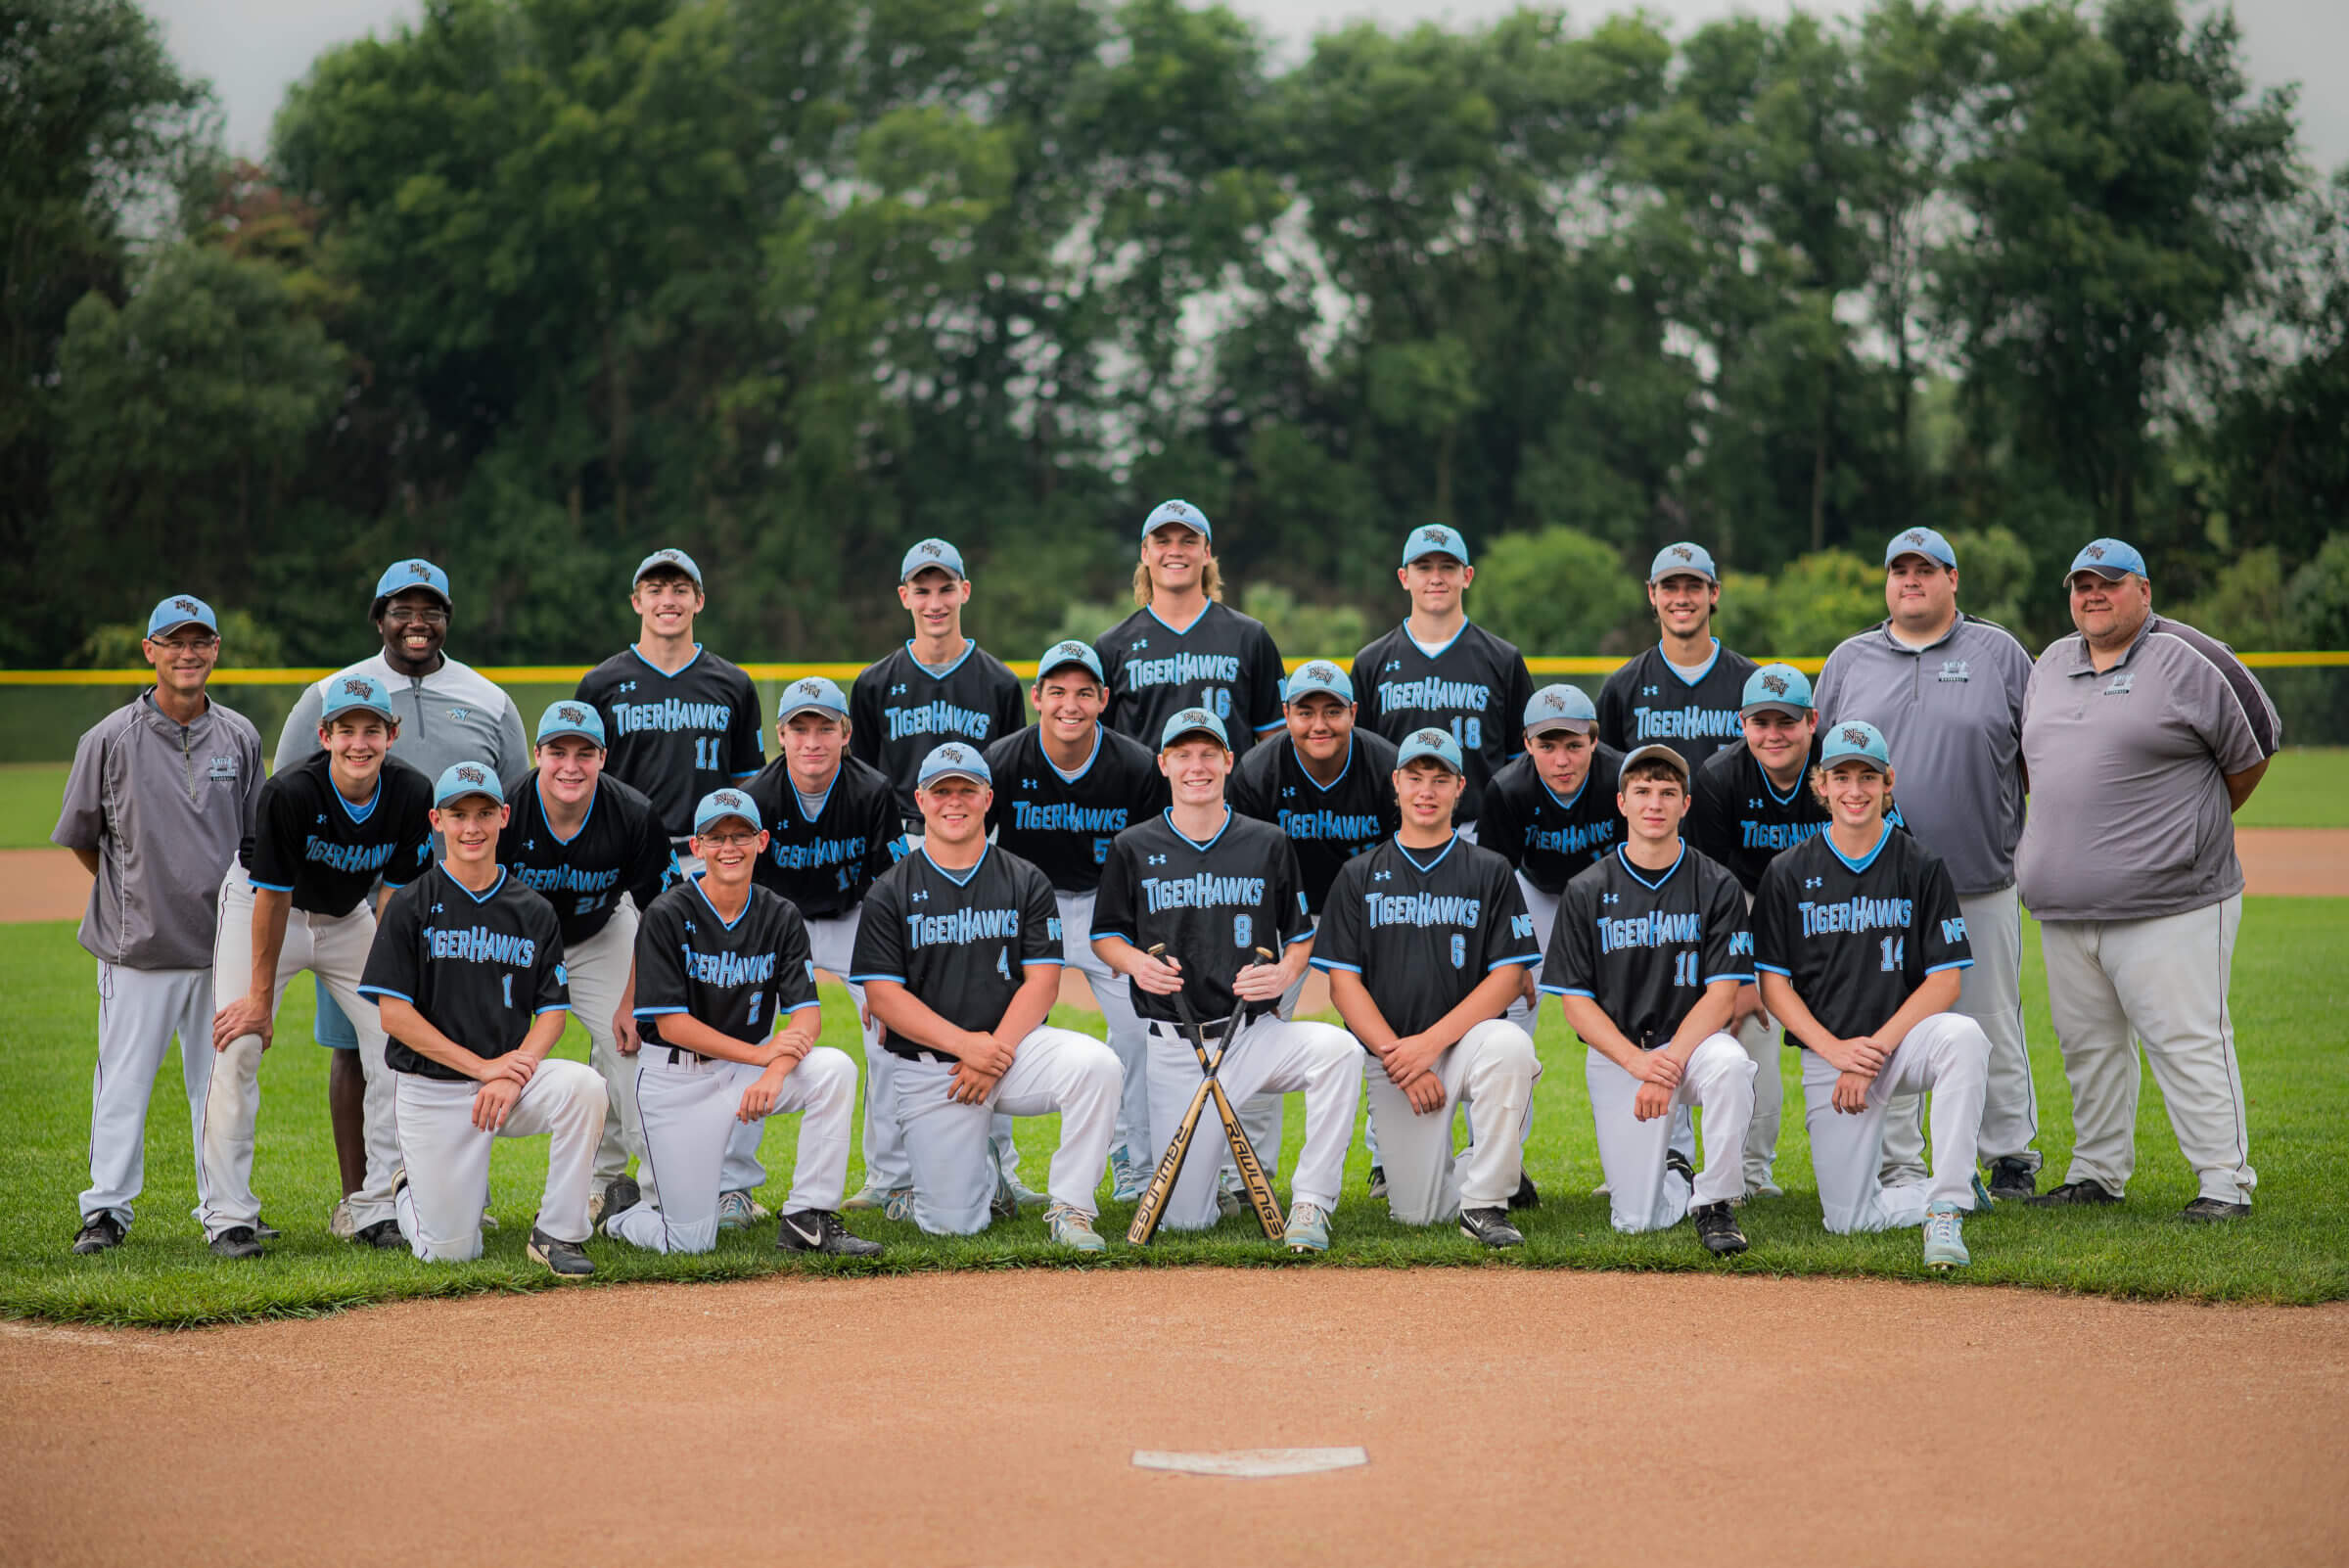 NFV High School Baseball 2019 Team Photograph